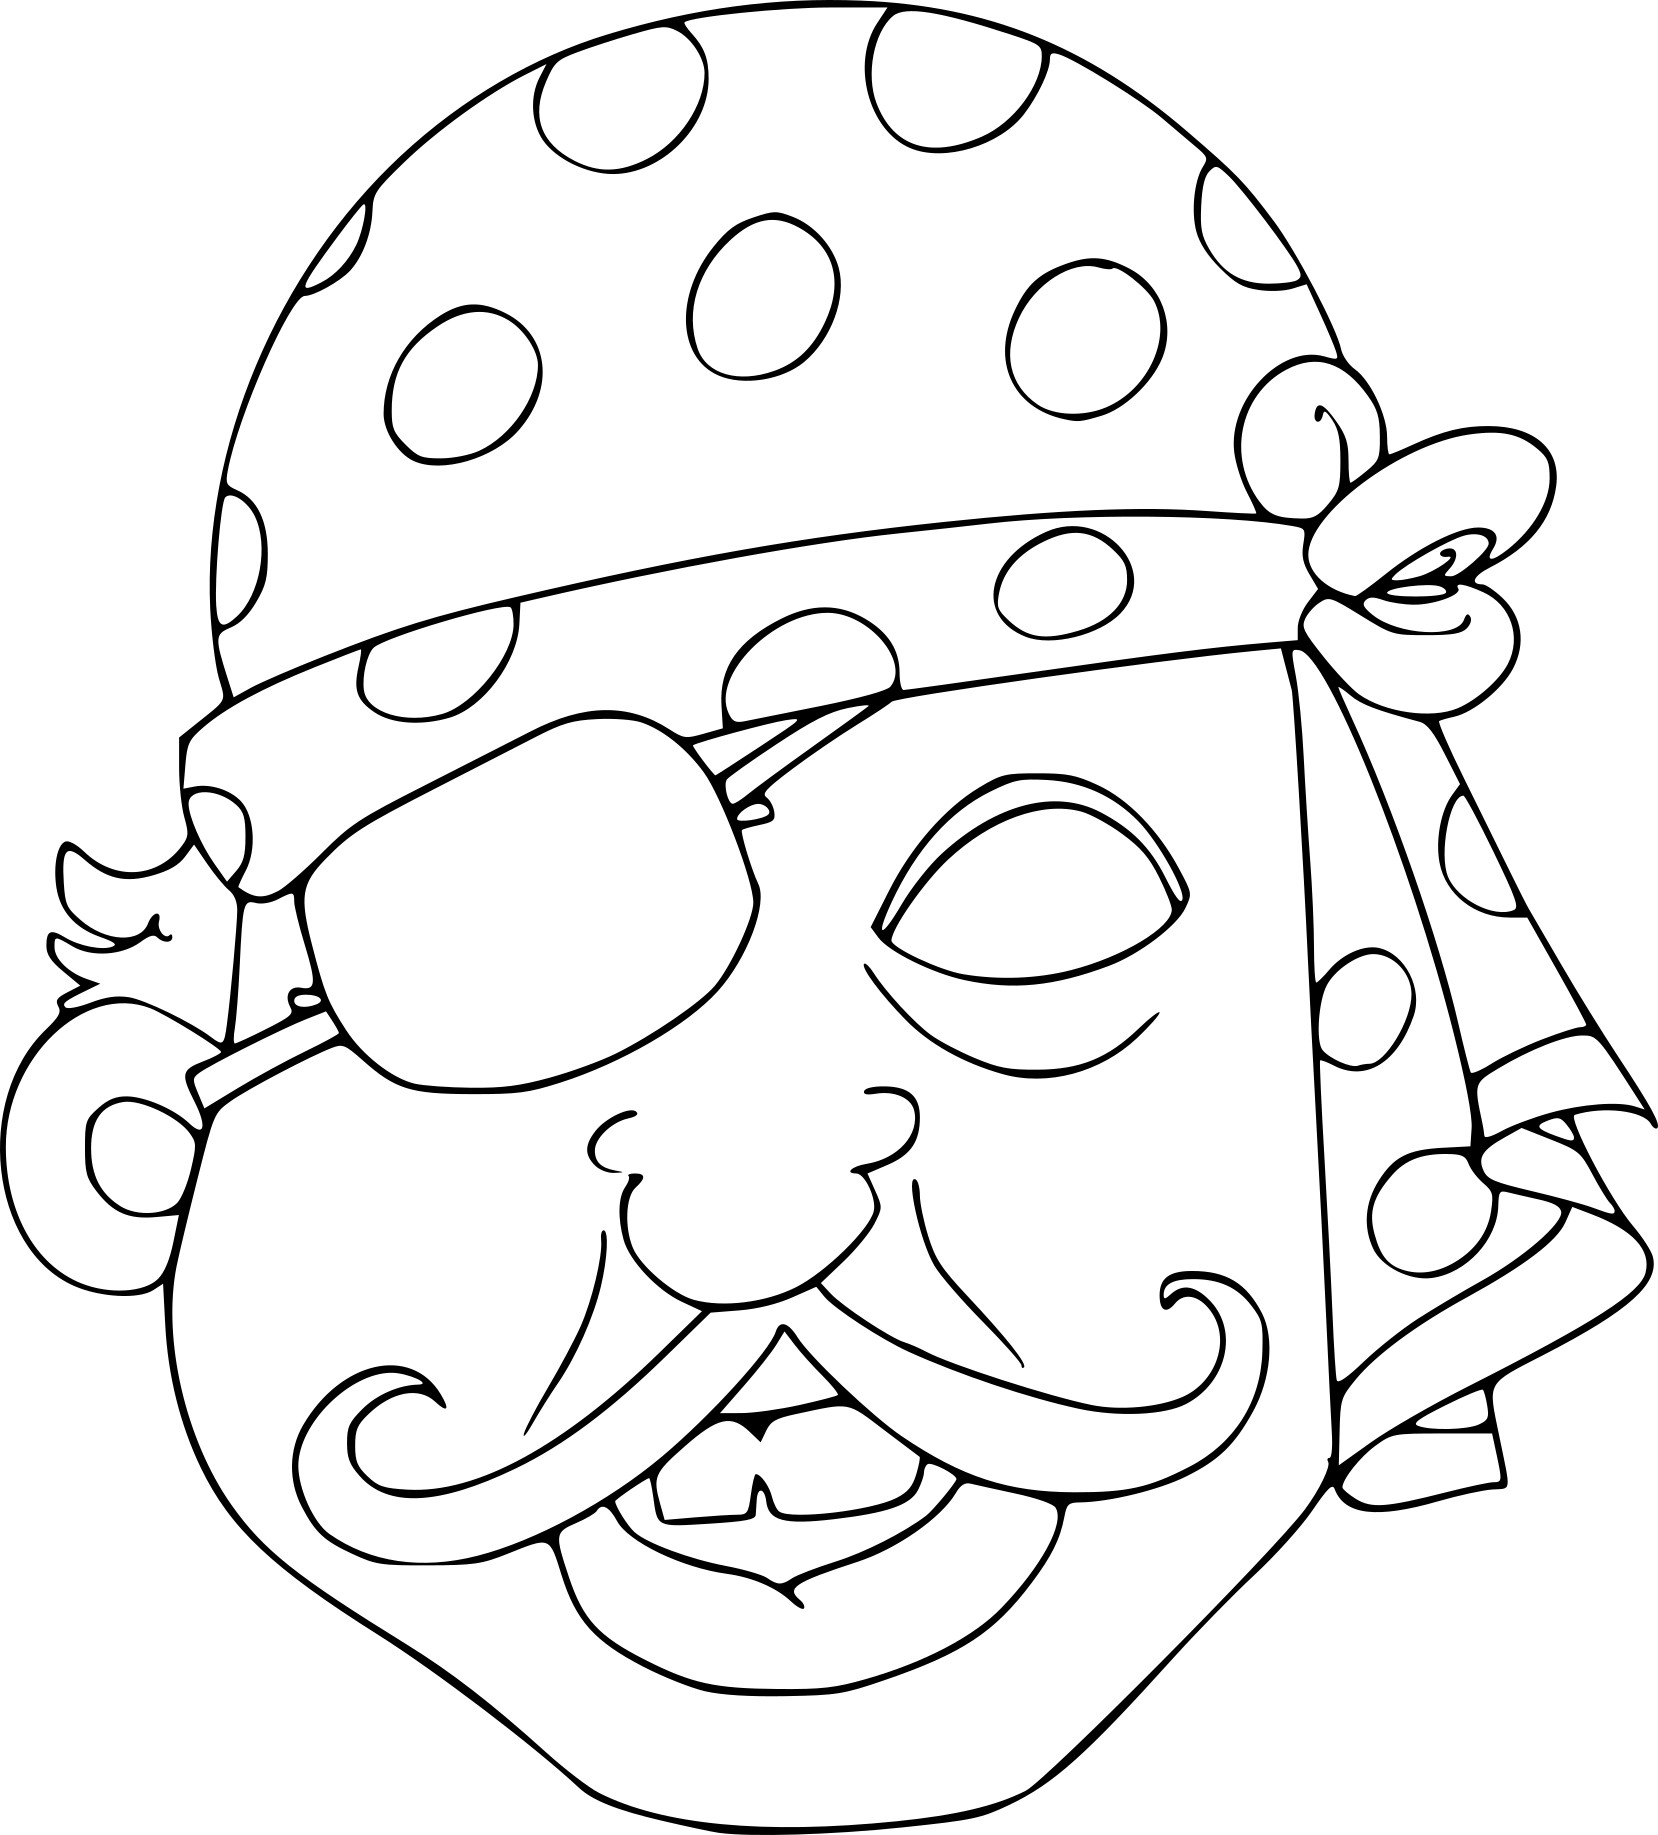 Coloriage masque pirate imprimer sur coloriages info - Masque de princesse a colorier ...